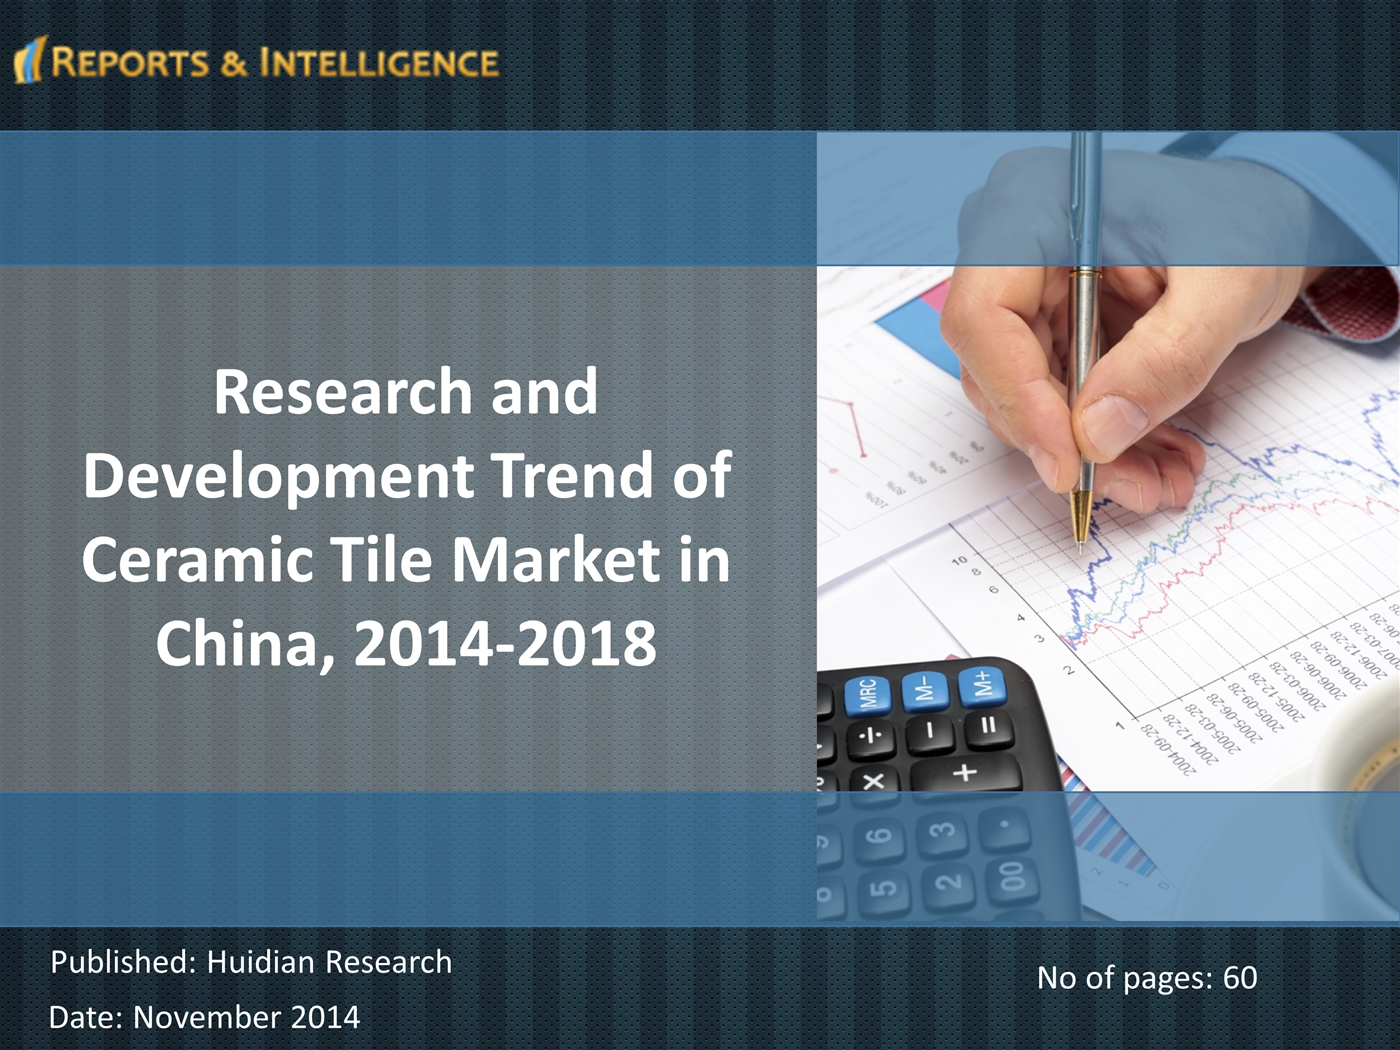 Research and development trend of ceramic tile market in china research and development trend of ceramic tile market in china 2014 2018 powerpoint presentation ppt dailygadgetfo Choice Image